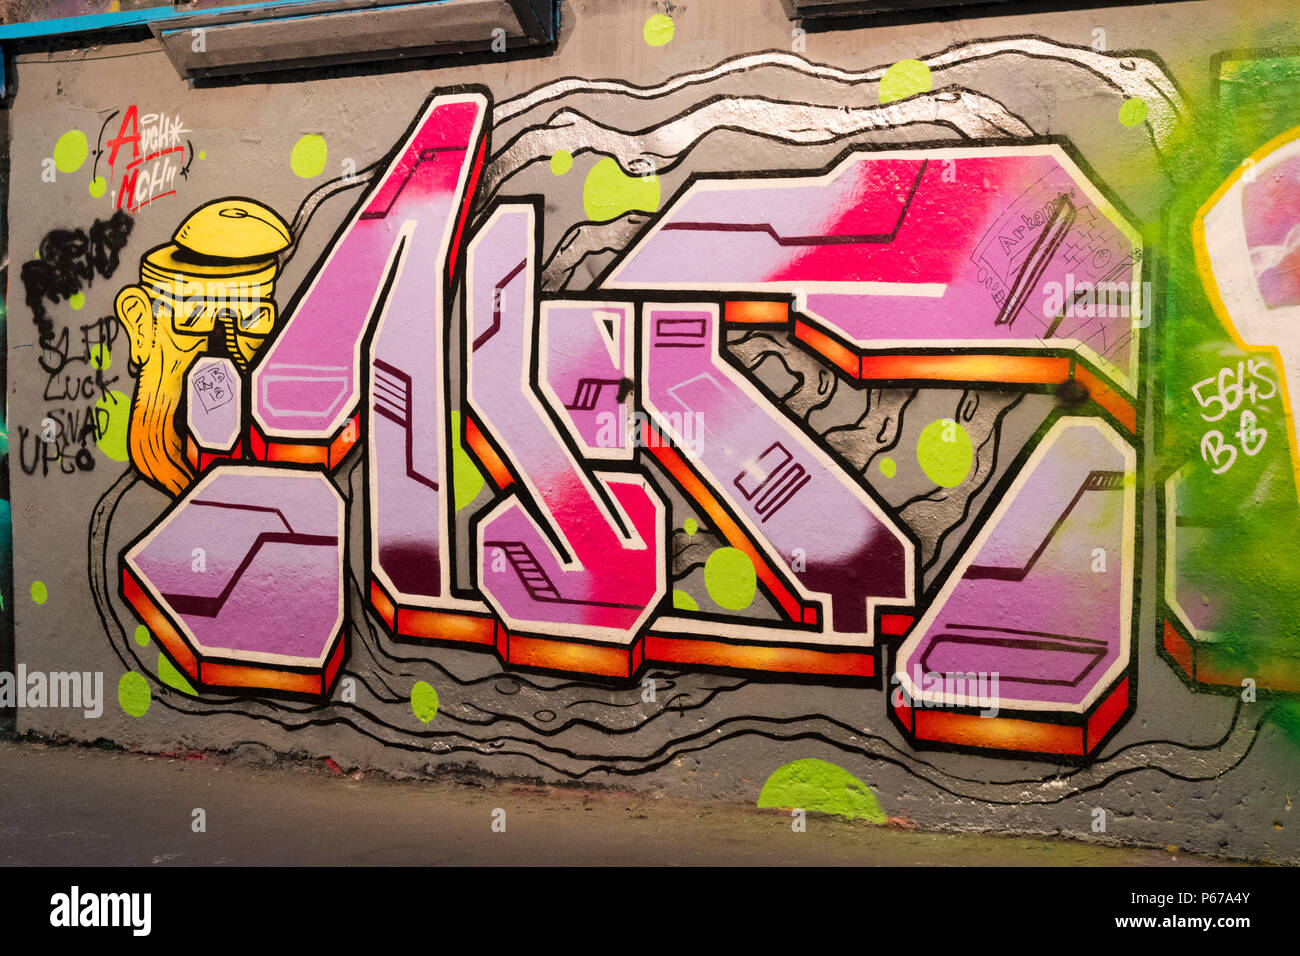 London Waterloo Leake Street lettres rouge rose graffiti wall script trottoir chaussée détail abstract Photo Stock